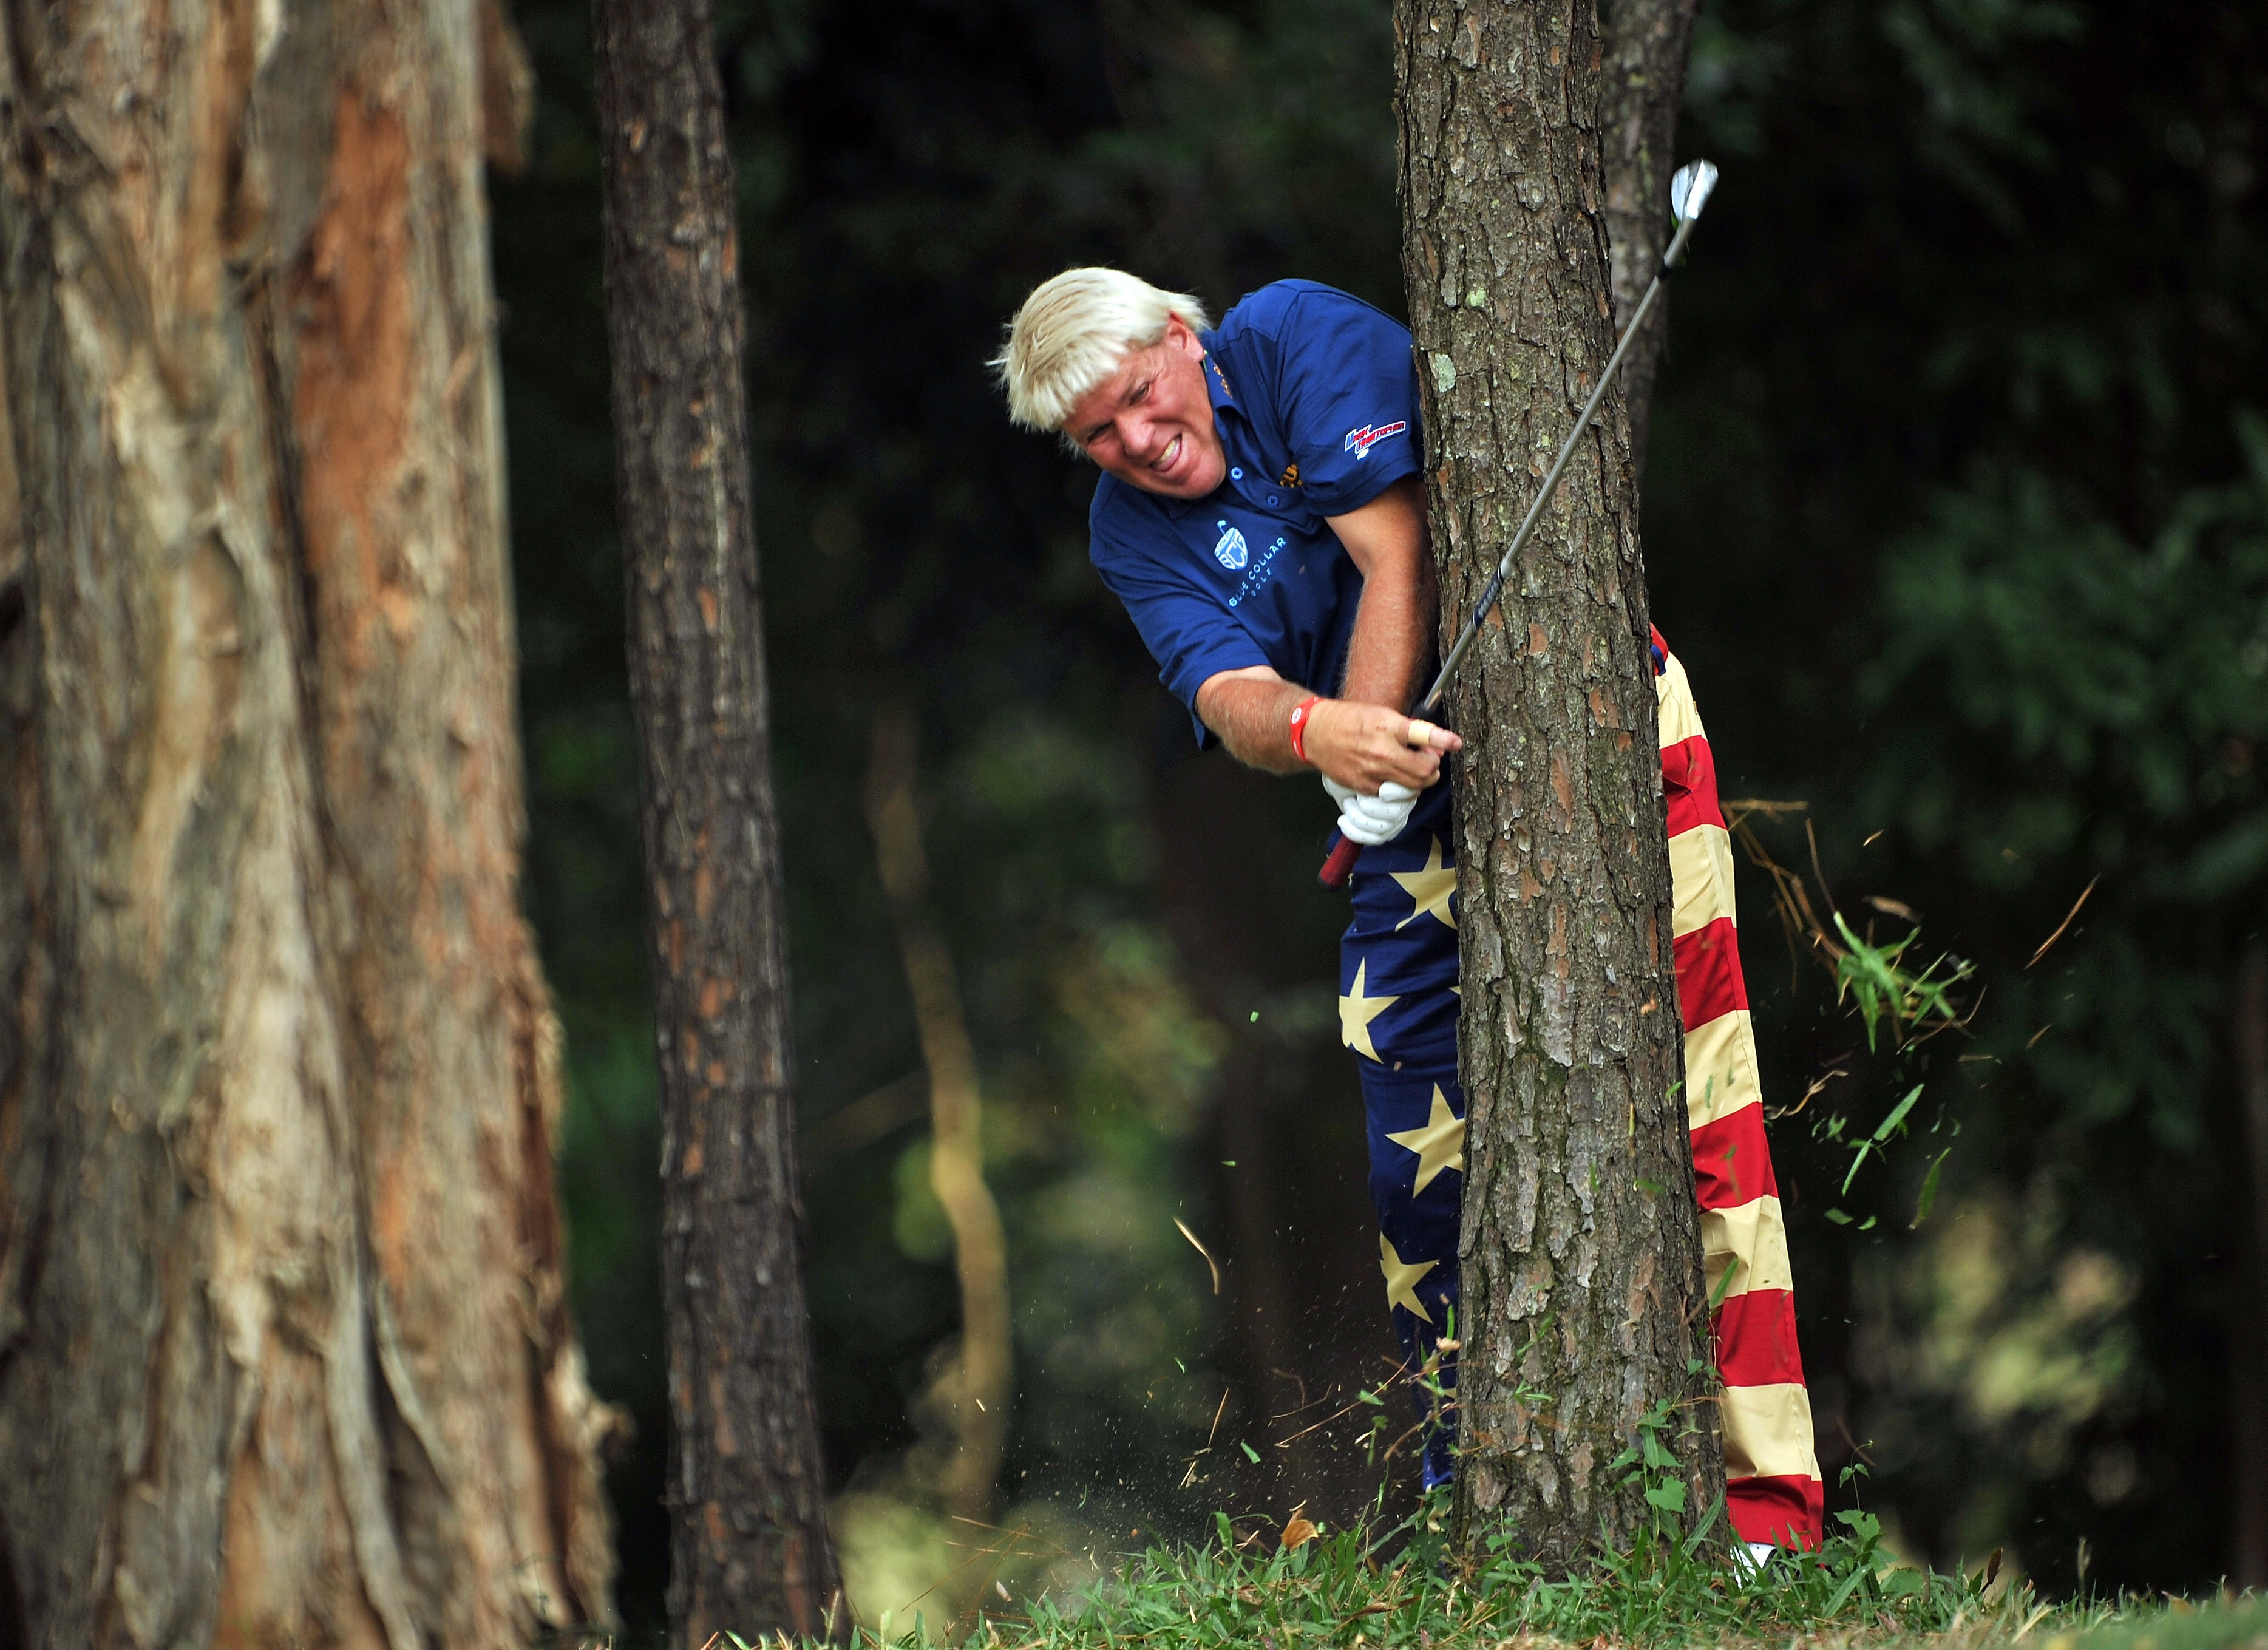 Inside John Daly's 5 Suspensions, 6 Probations, and 21 Citations From the PGA Tour